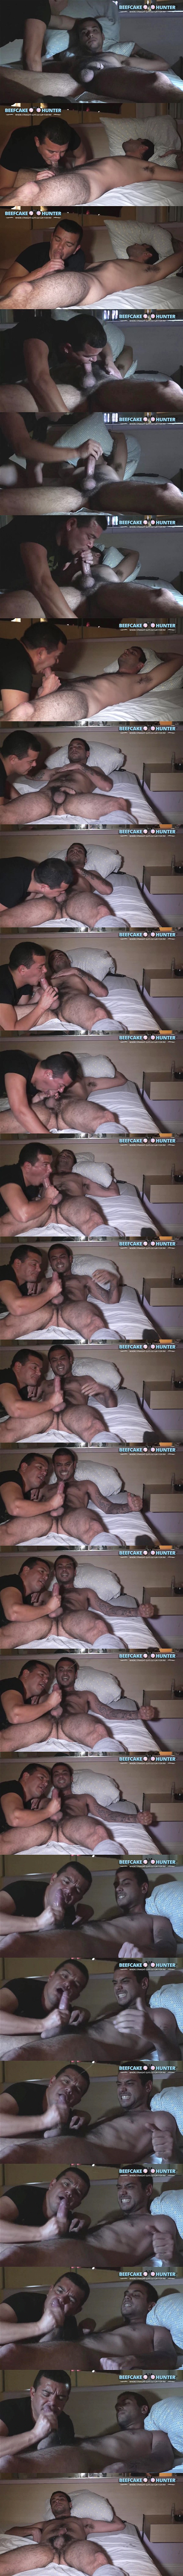 Beefcakehunter - Victor deep throats sexy hairy straight guy Chico's cock and licks his balls before he strokes a nice creamy load out of Chico's hard cock in Dark Motel Encounter 02